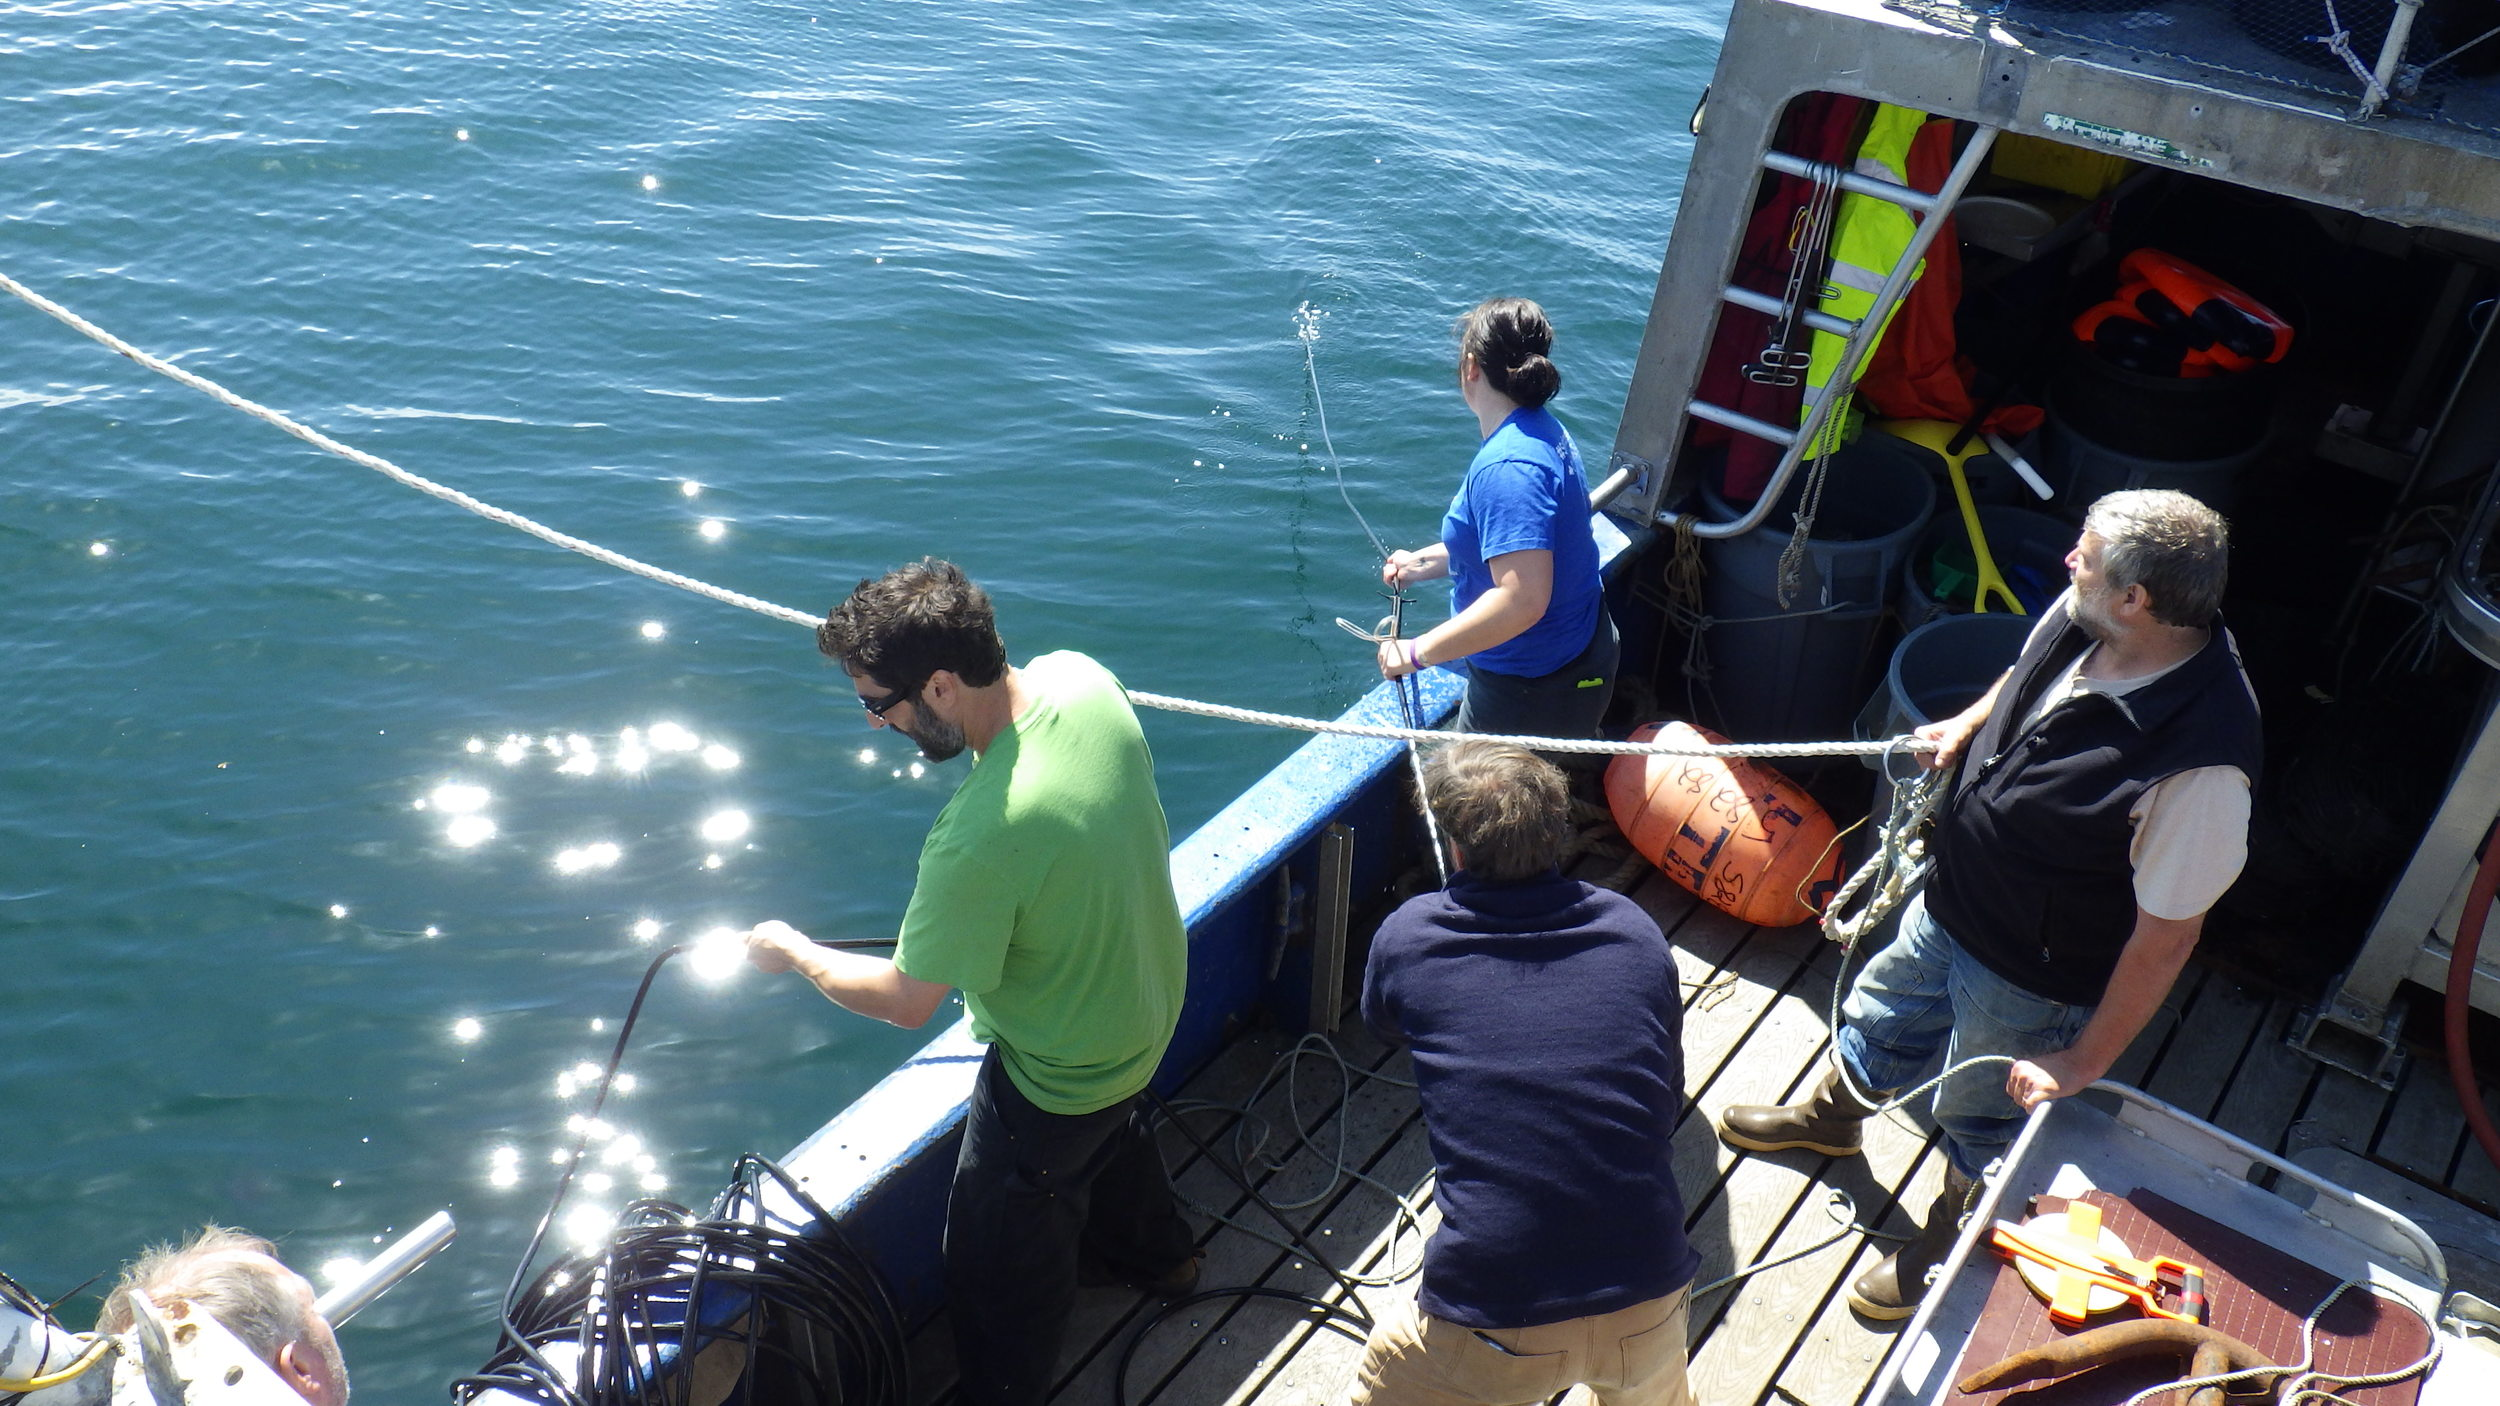 Skipper Stephen Rhoades of the Marilyn J (left), University of Alaska BLaST student Kate Hauch, Dr. Thomas Gordon (foreground), and Alaska Longline Fishermen's Association program coordinator Dan Falvey (right) coordinate the release of hydrophone arrays for tracking sperm whales that strip fish from commercial fishing gear. (Photo Provided by Anna Wietelmann)